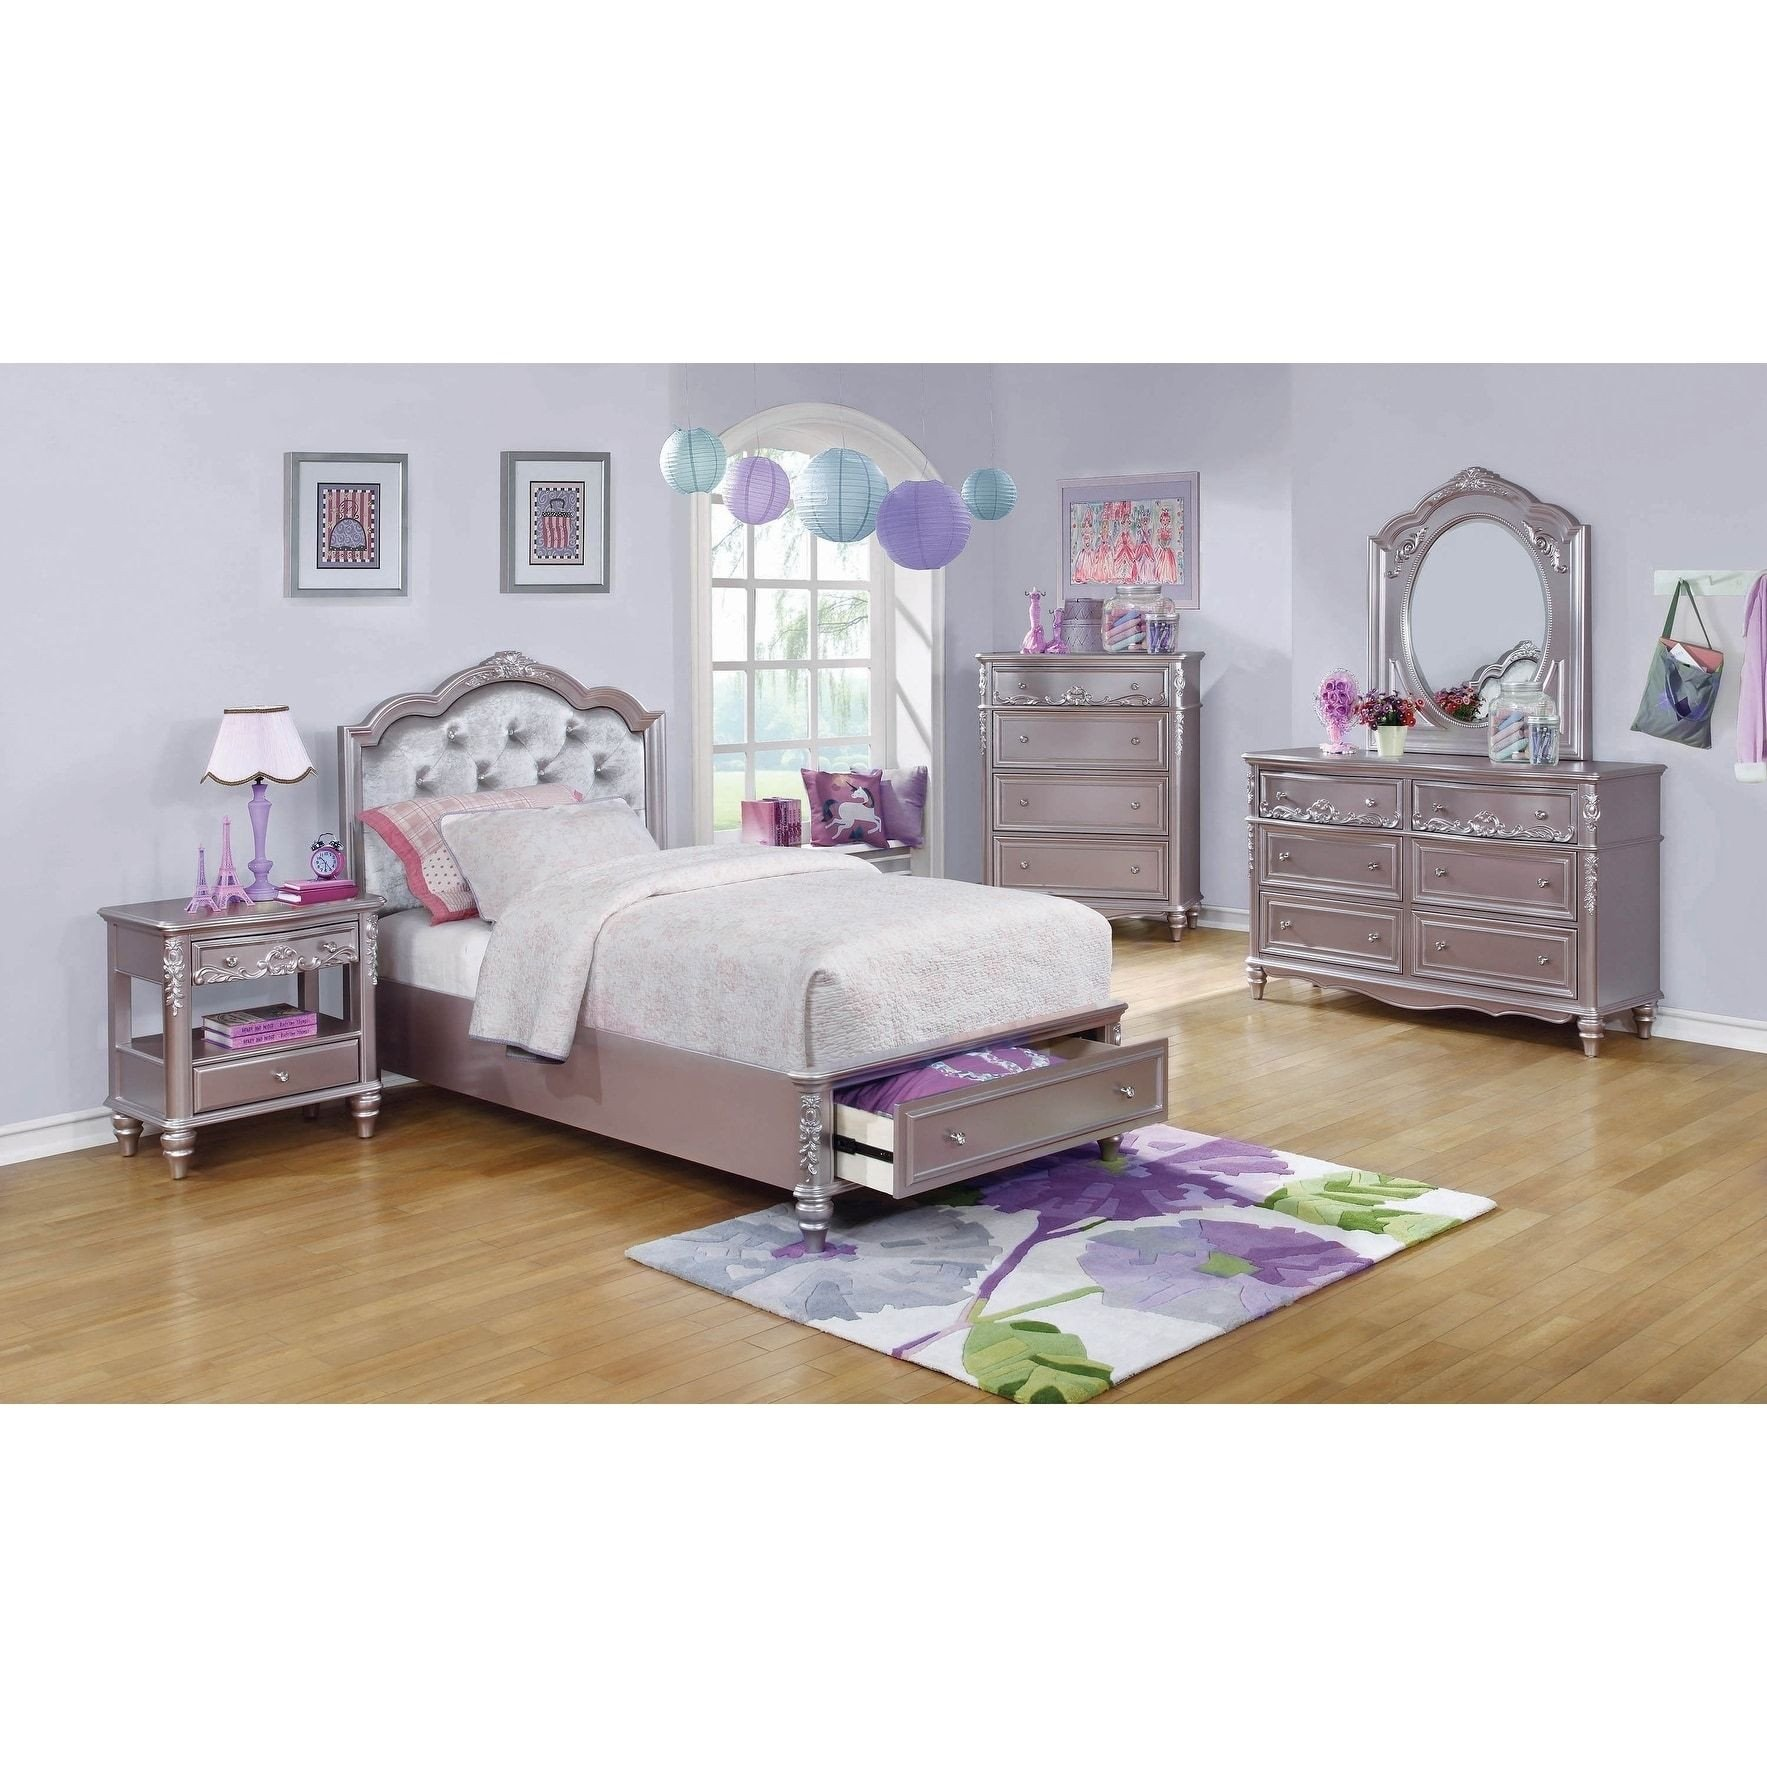 Cheap Bedroom Set Twin Luxury Seraphina Metallic Lilac 4 Piece Bedroom Set with 2